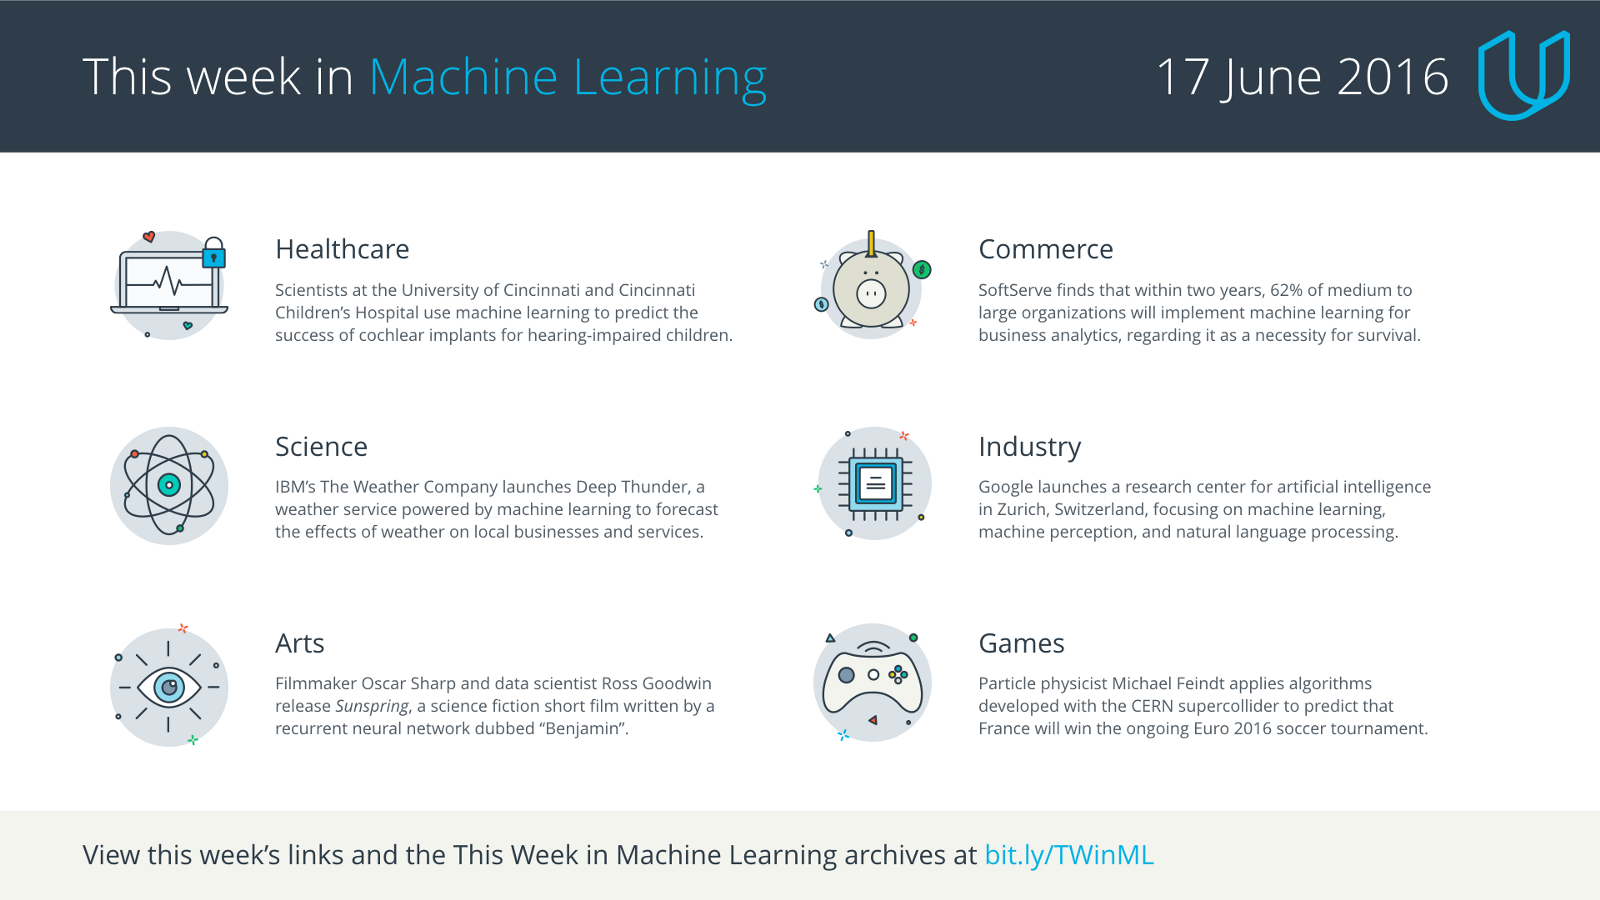 This Week in Machine Learning, 17 June 2016